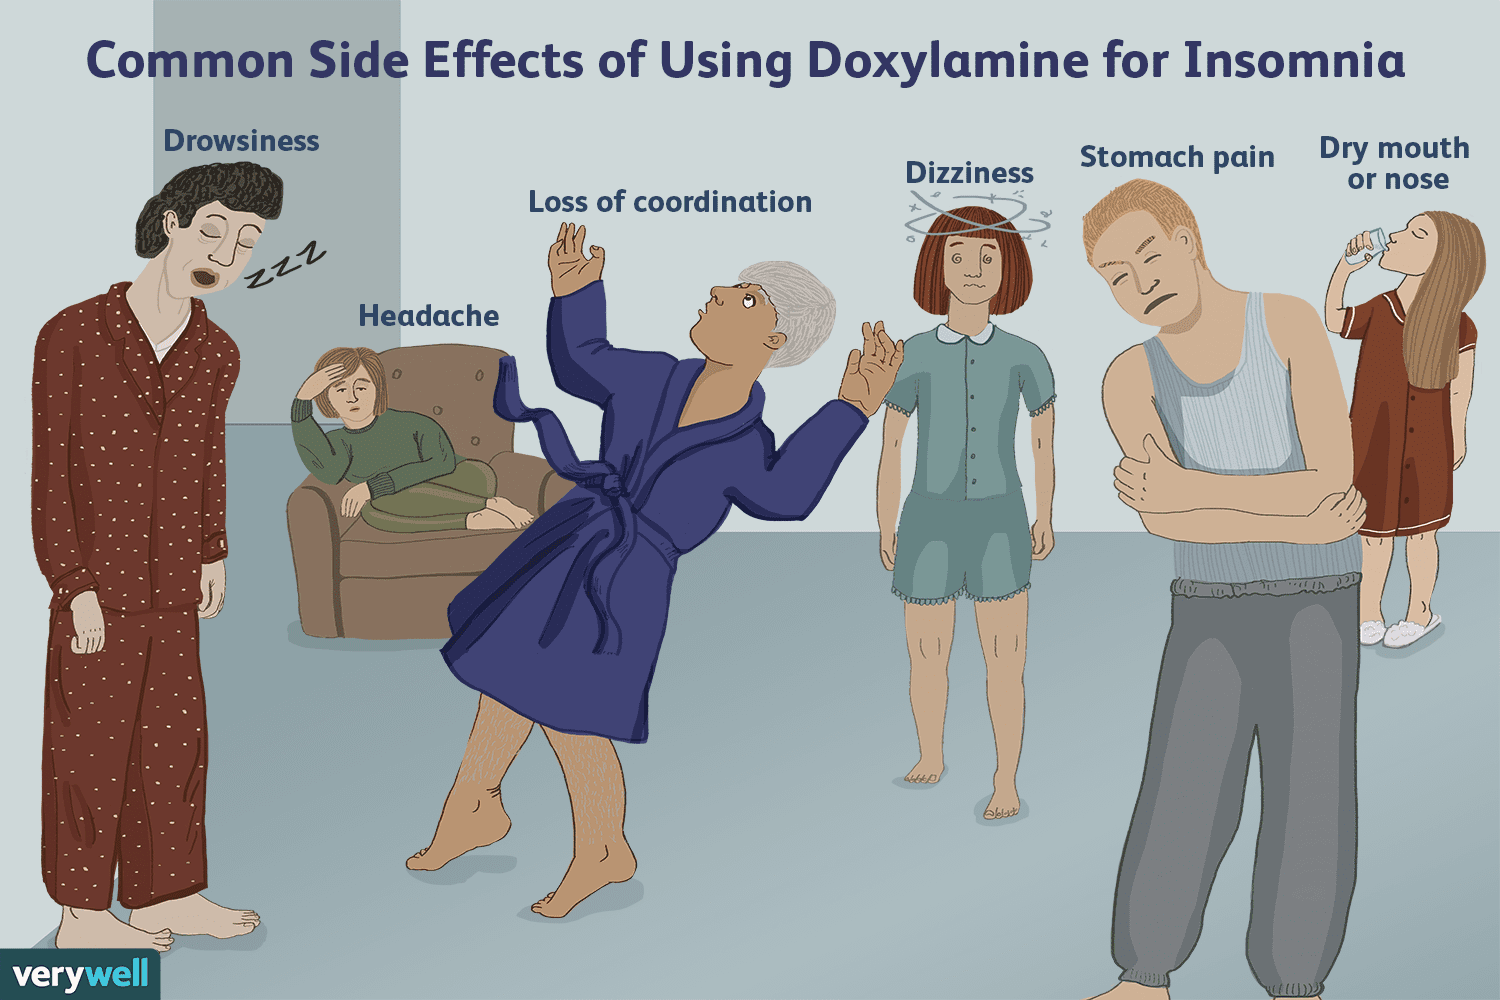 Doxylamine Not Recommended for Insomnia Treatment